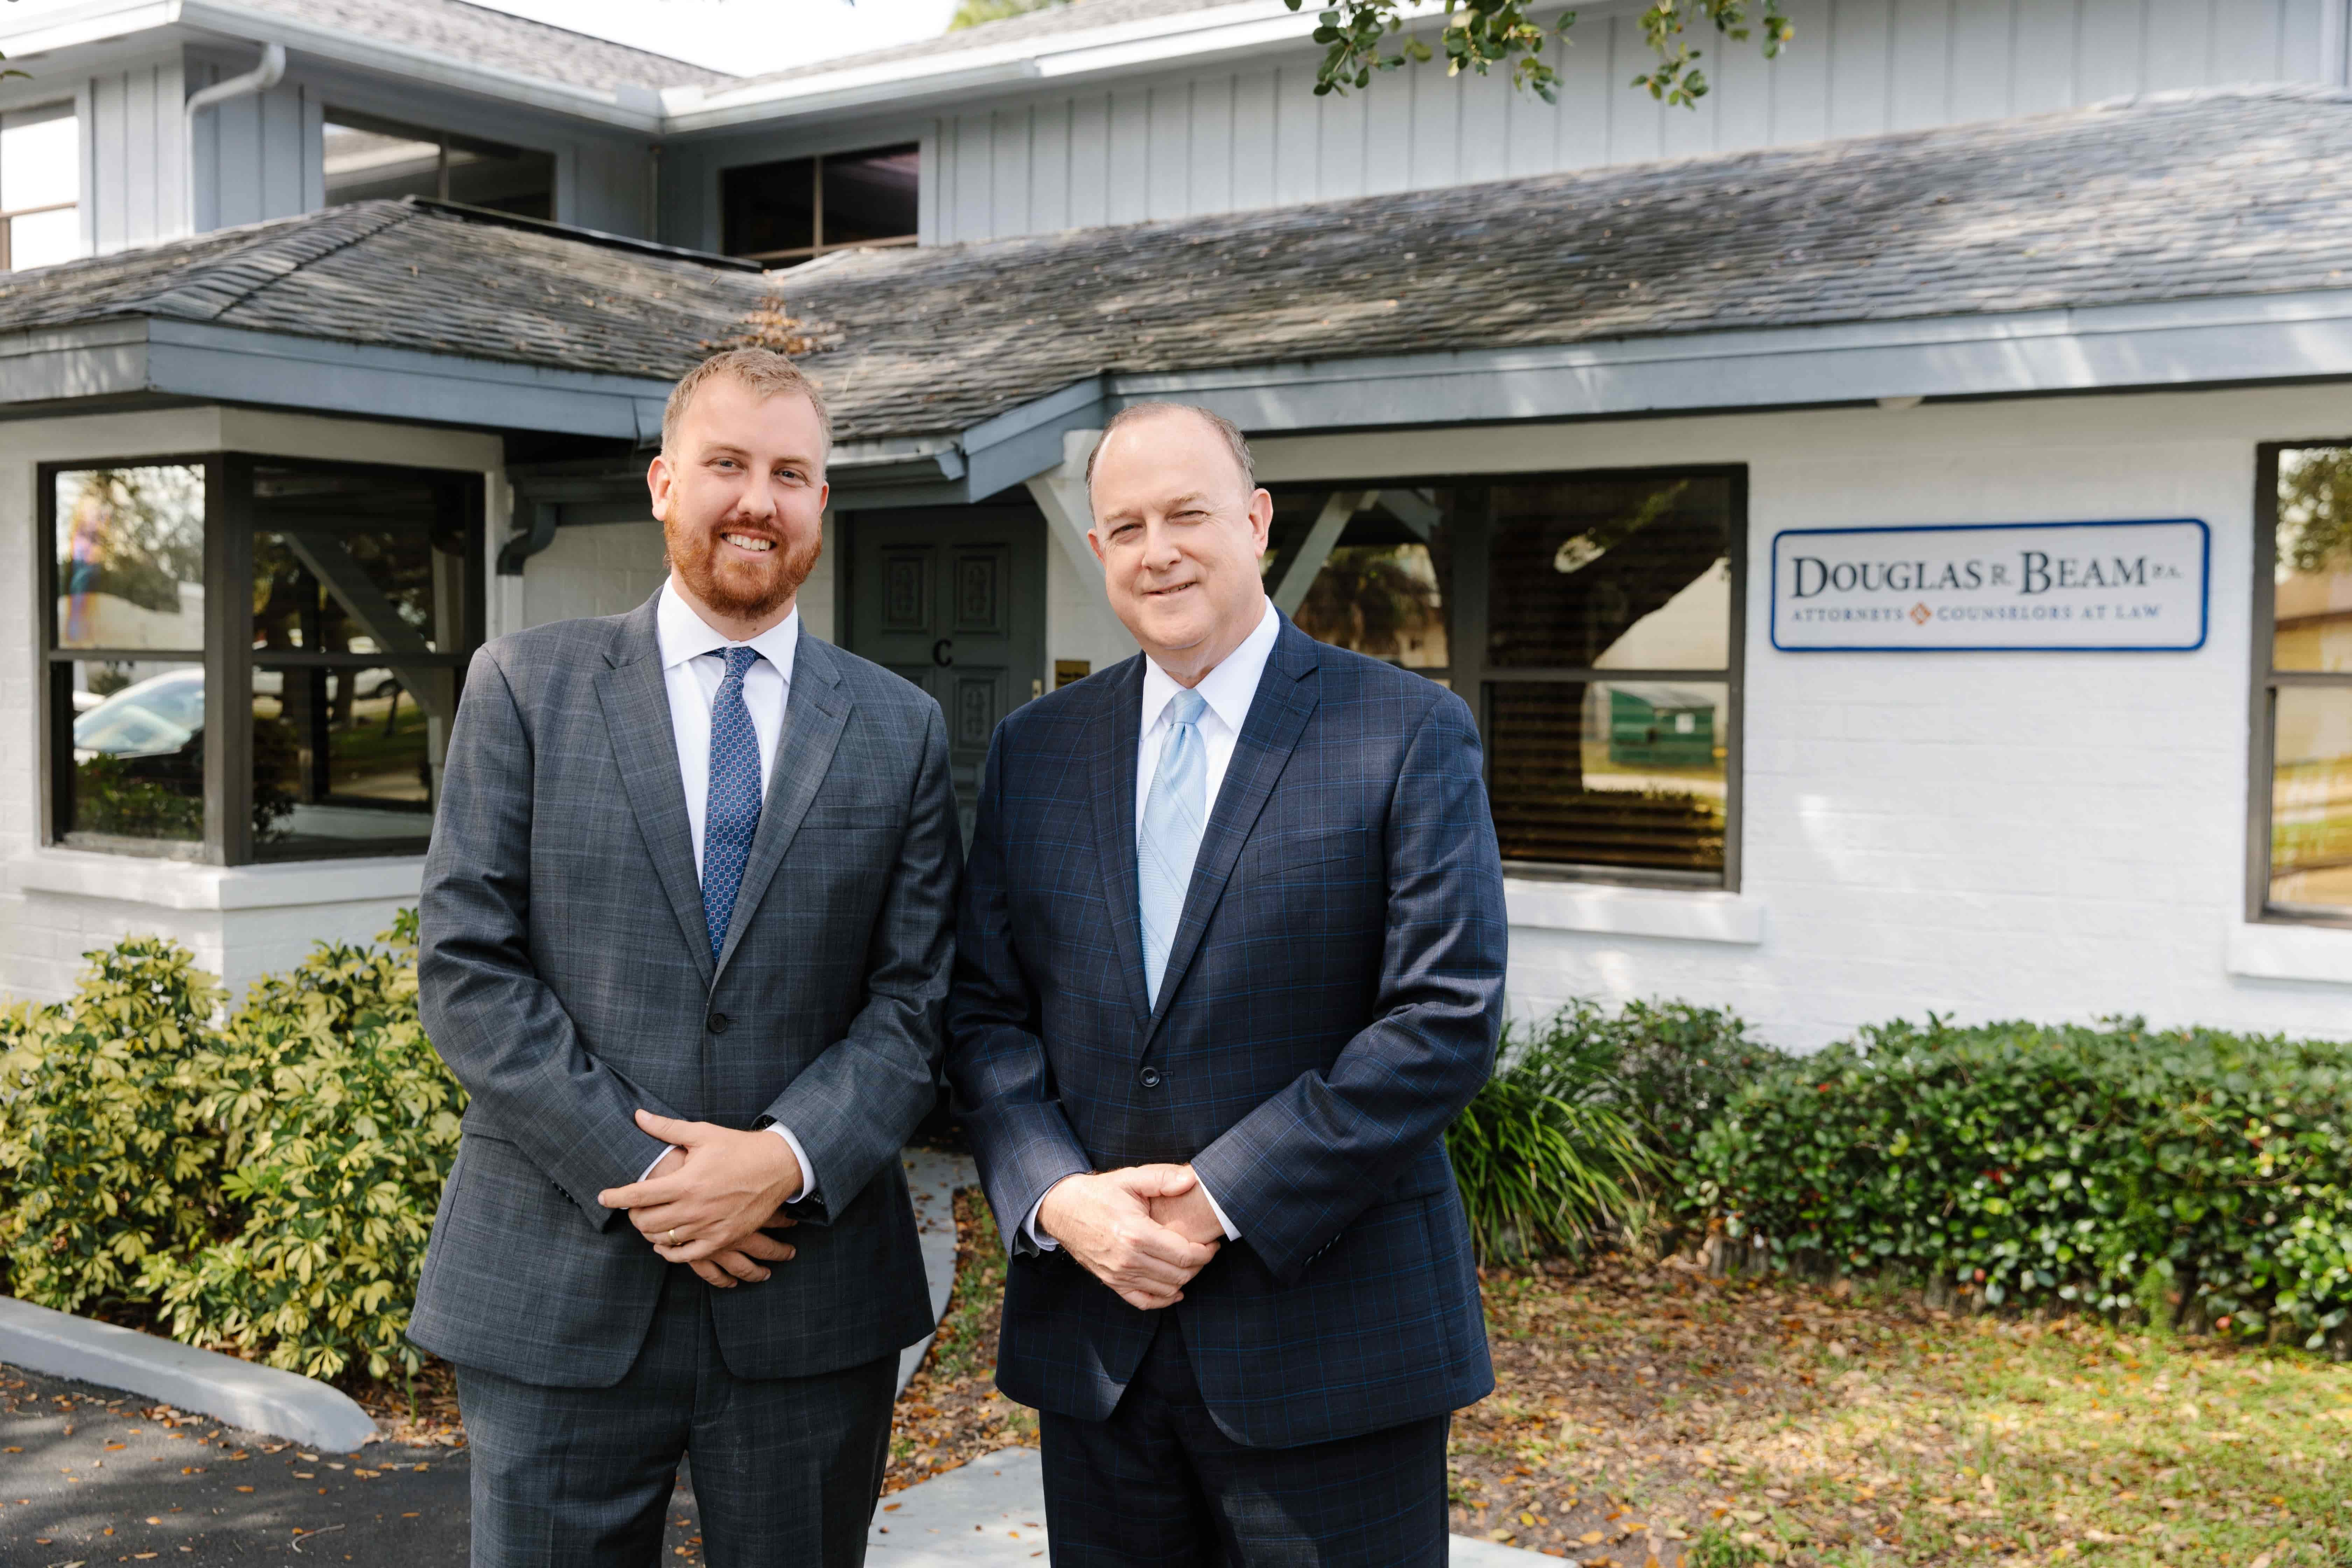 Attorneys Doug and Riley Beam stand outside of their law office in Melbourne, Florida.